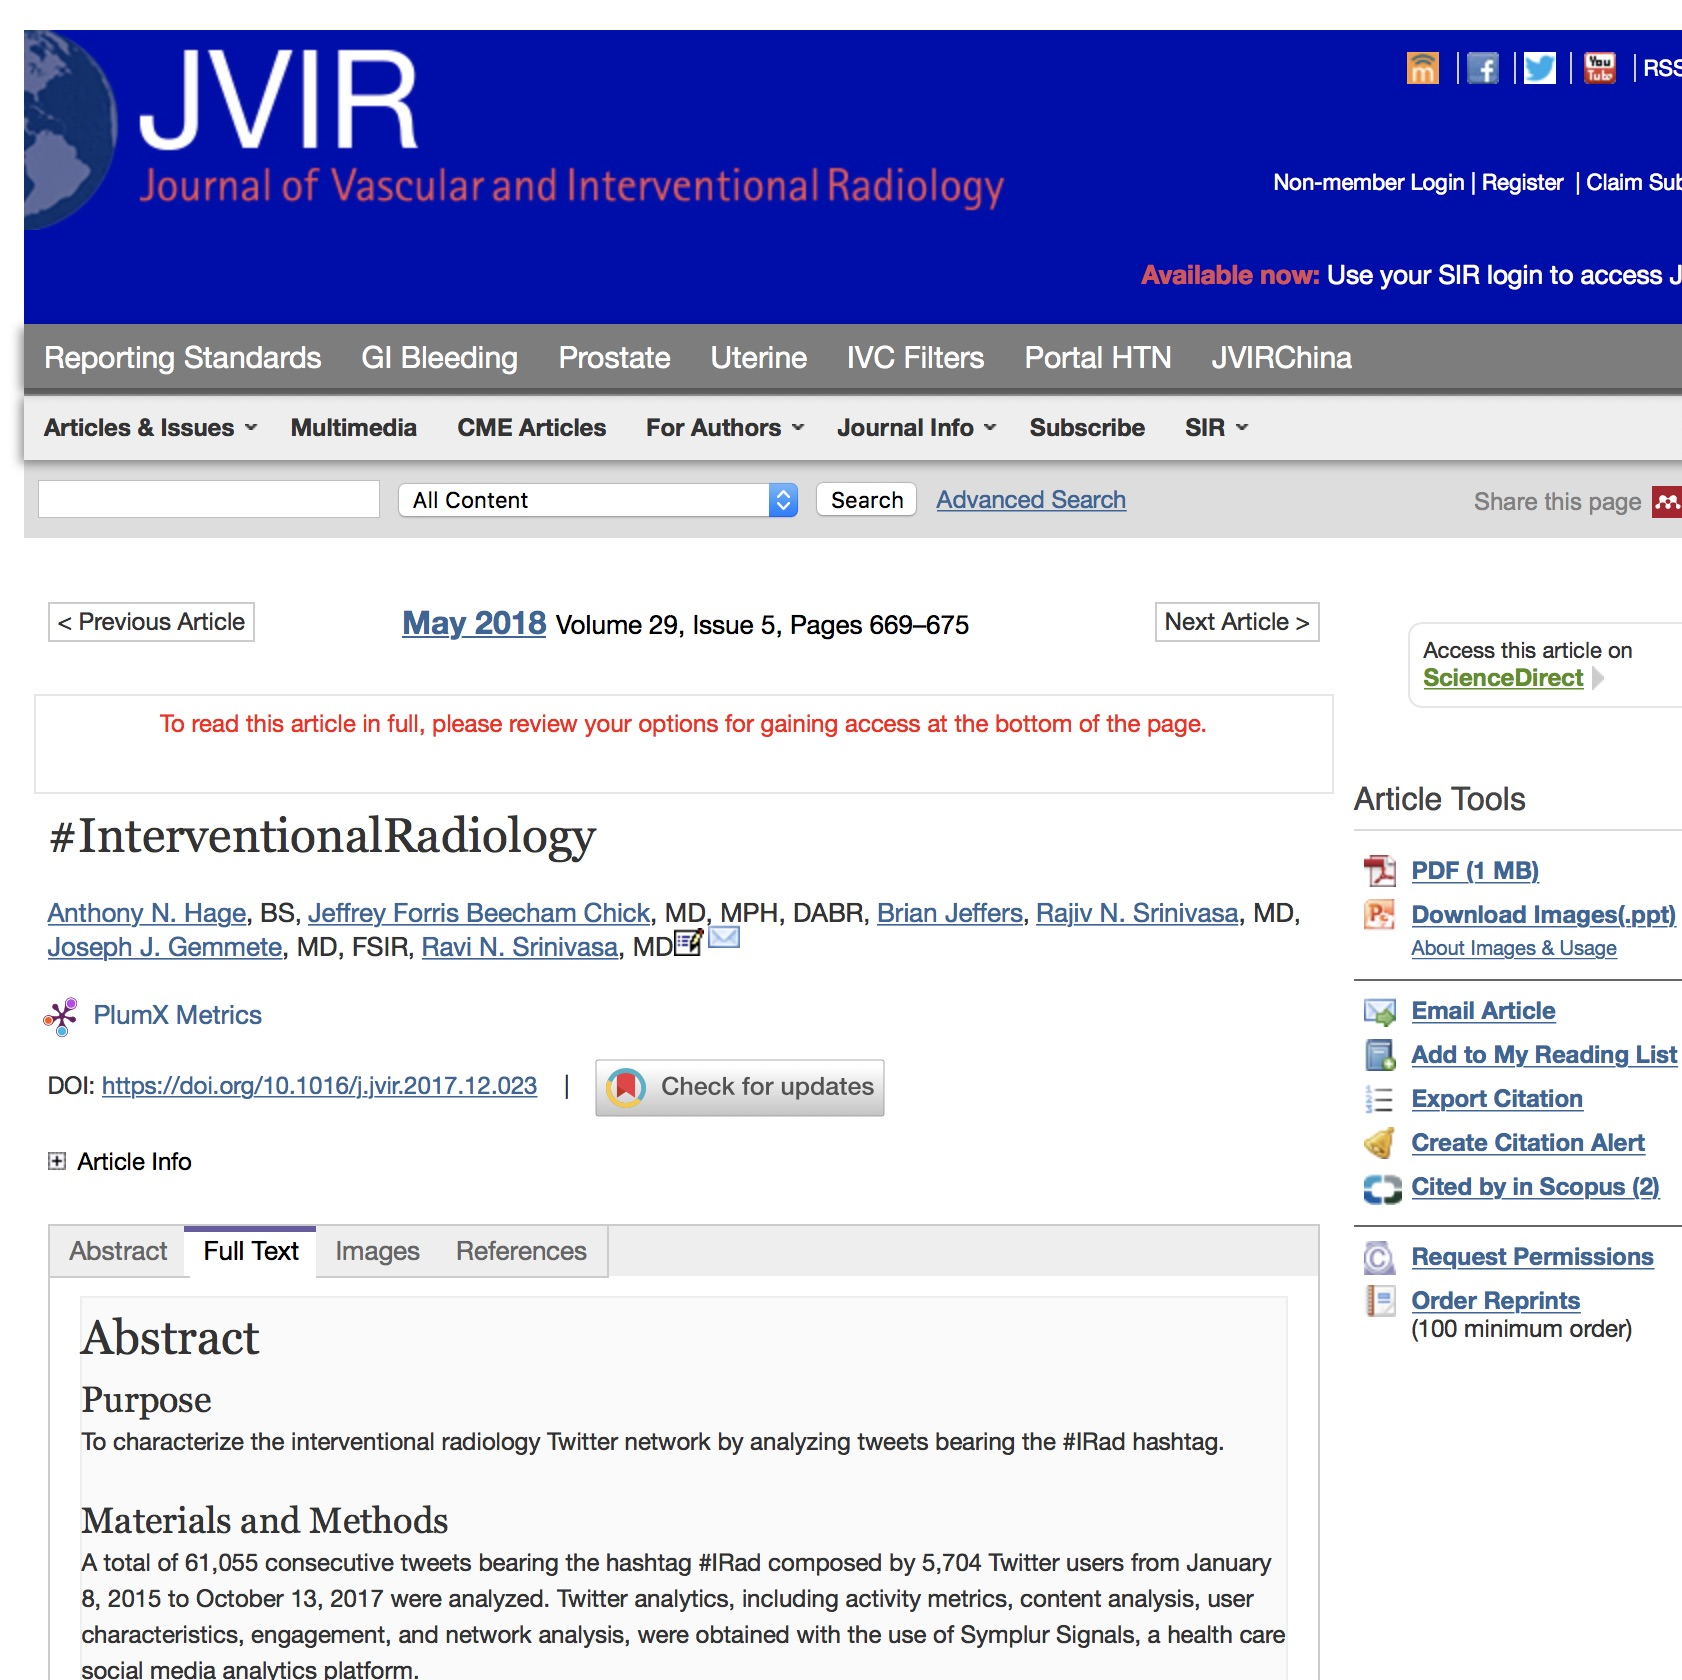 A healthcare social media research article published in Journal of Vascular and Interventional Radiology, April 30, 2018